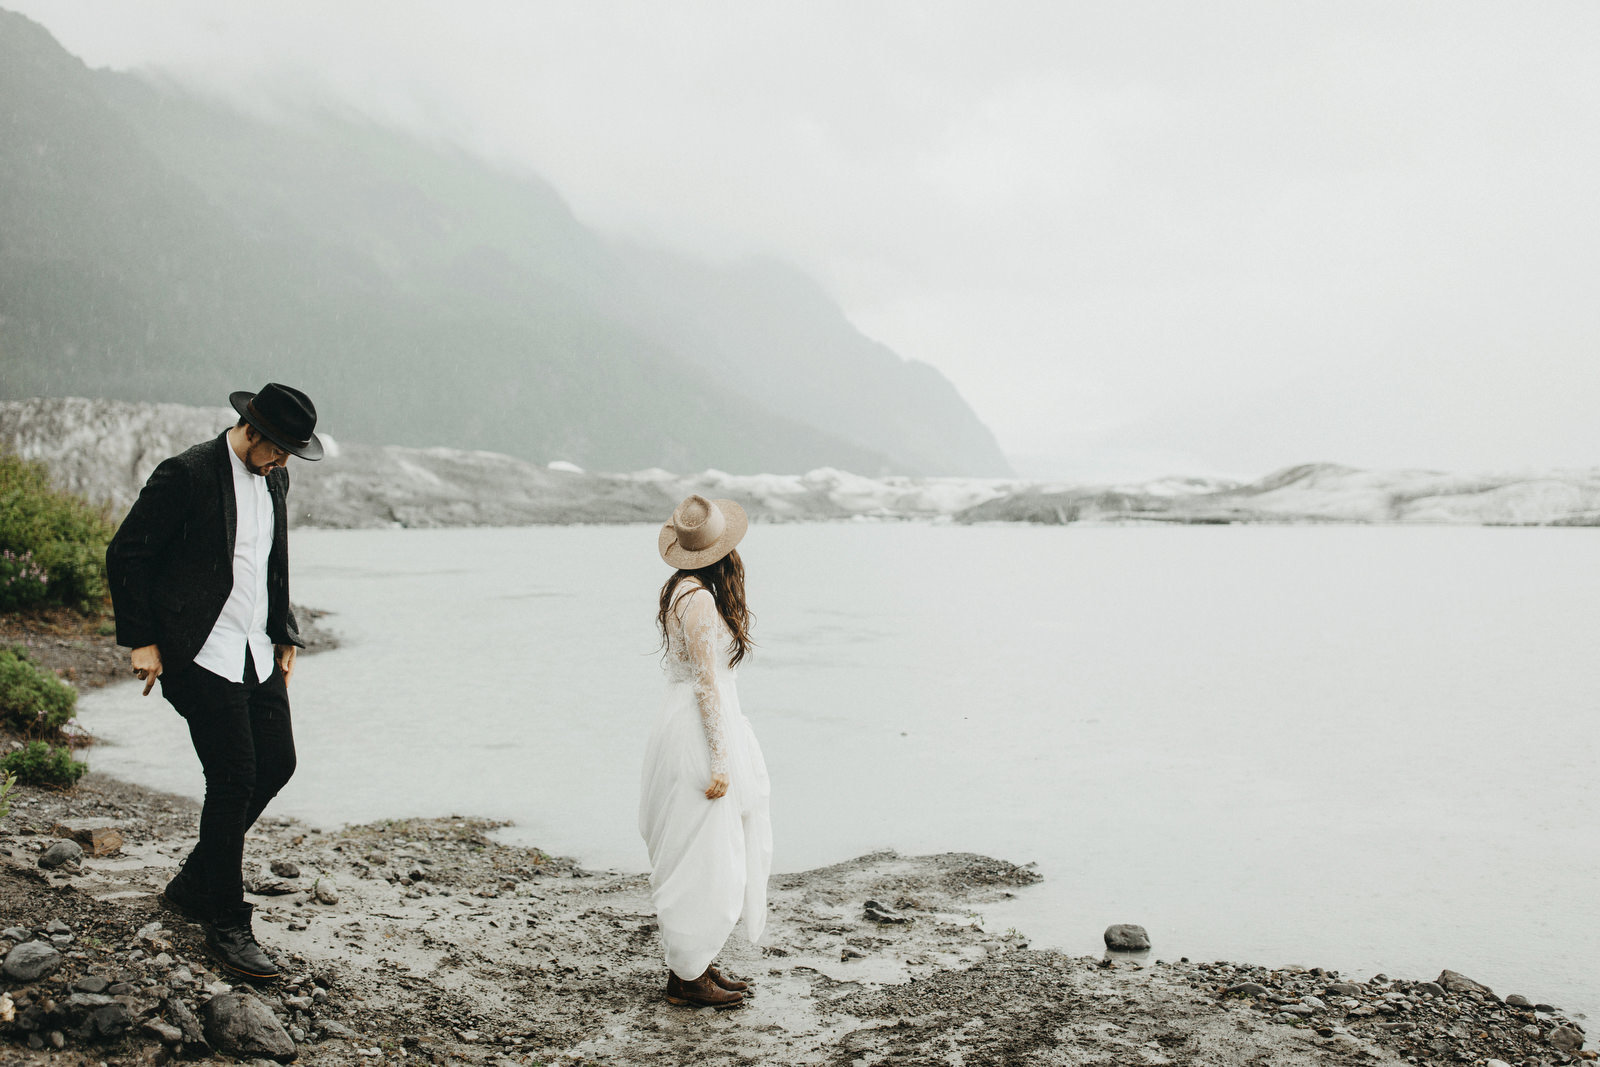 athena-and-camron-alaska-elopement-wedding-inspiration-india-earl-athena-grace-glacier-lagoon-wedding72